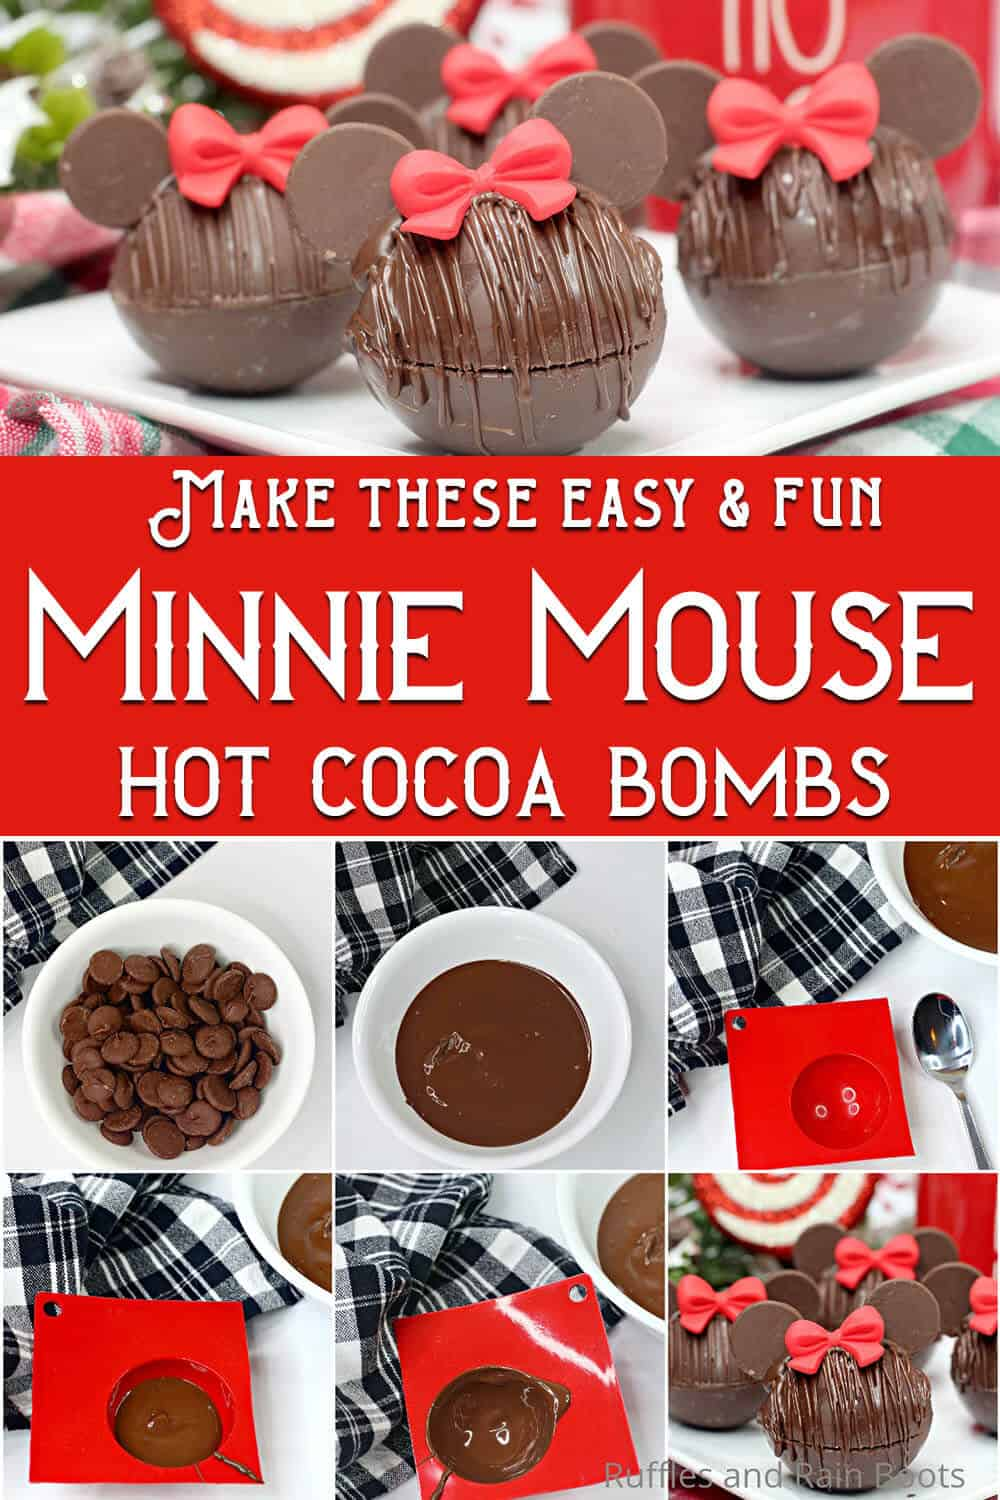 photo collage of minnie mouse hot chocolate bombs with text which reads make these easy & fun minnie mouse hot cocoa bombs